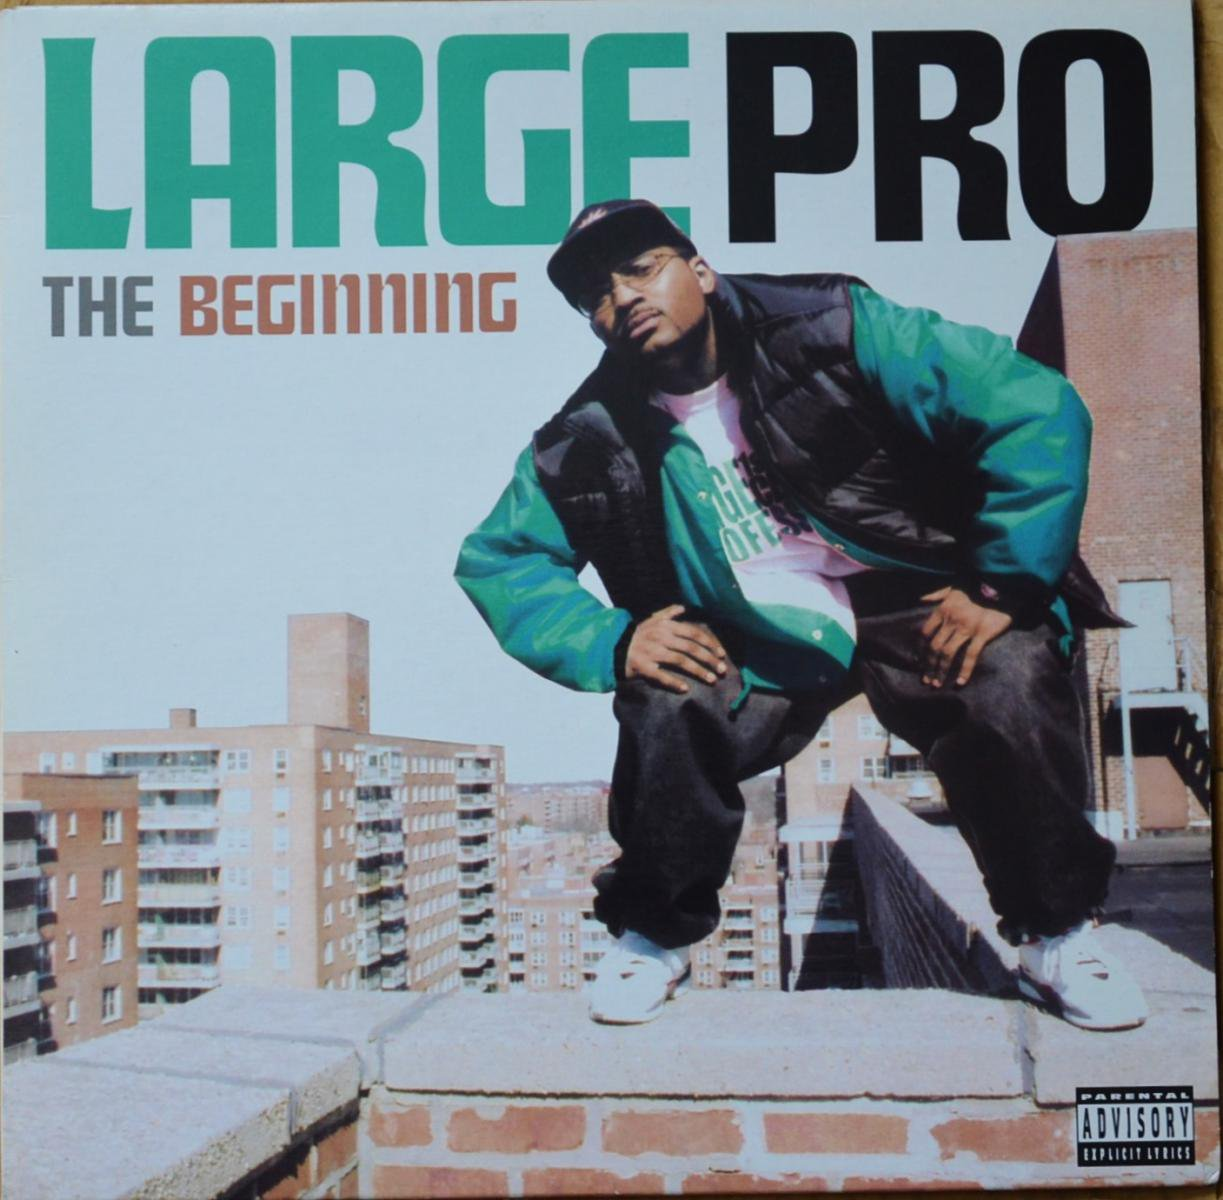 LARGE PRO / THE BEGINNING (12